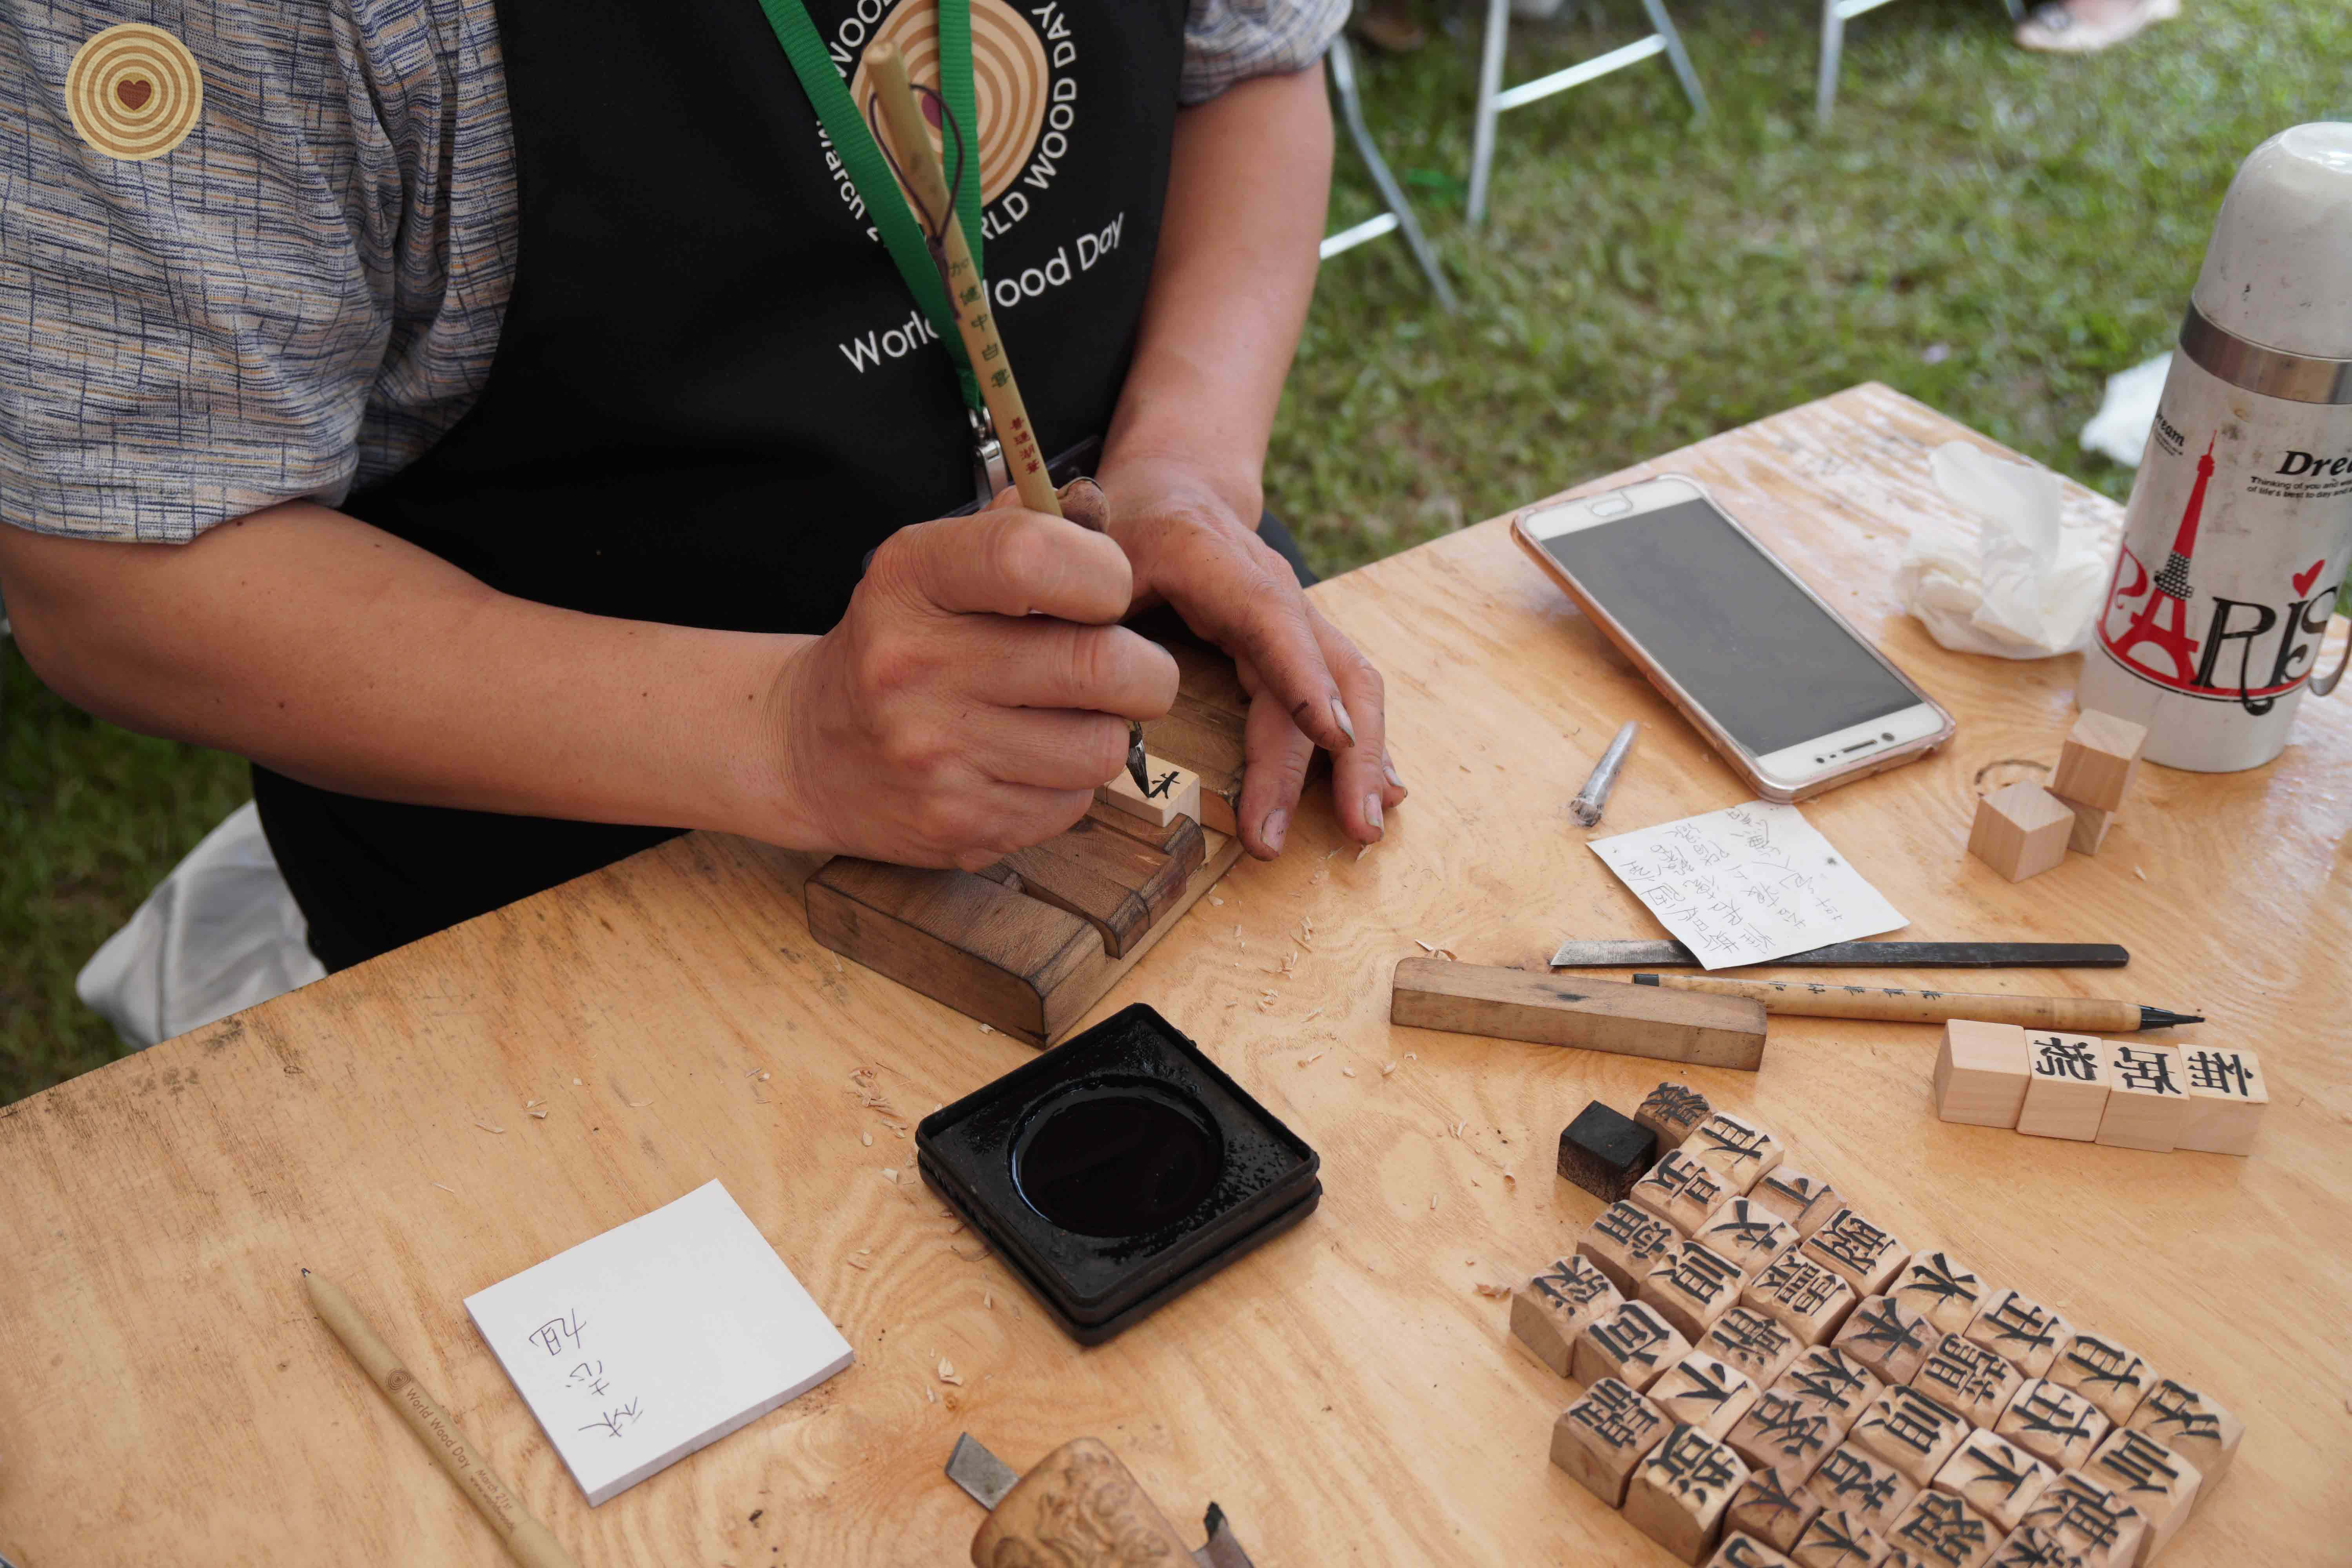 Wood, Folk Art Workshop, 2018 World Wood Day, Cambodia, Wooden Movable-type Printing, Non-tangible Cultural Heritage, Zou Jianning